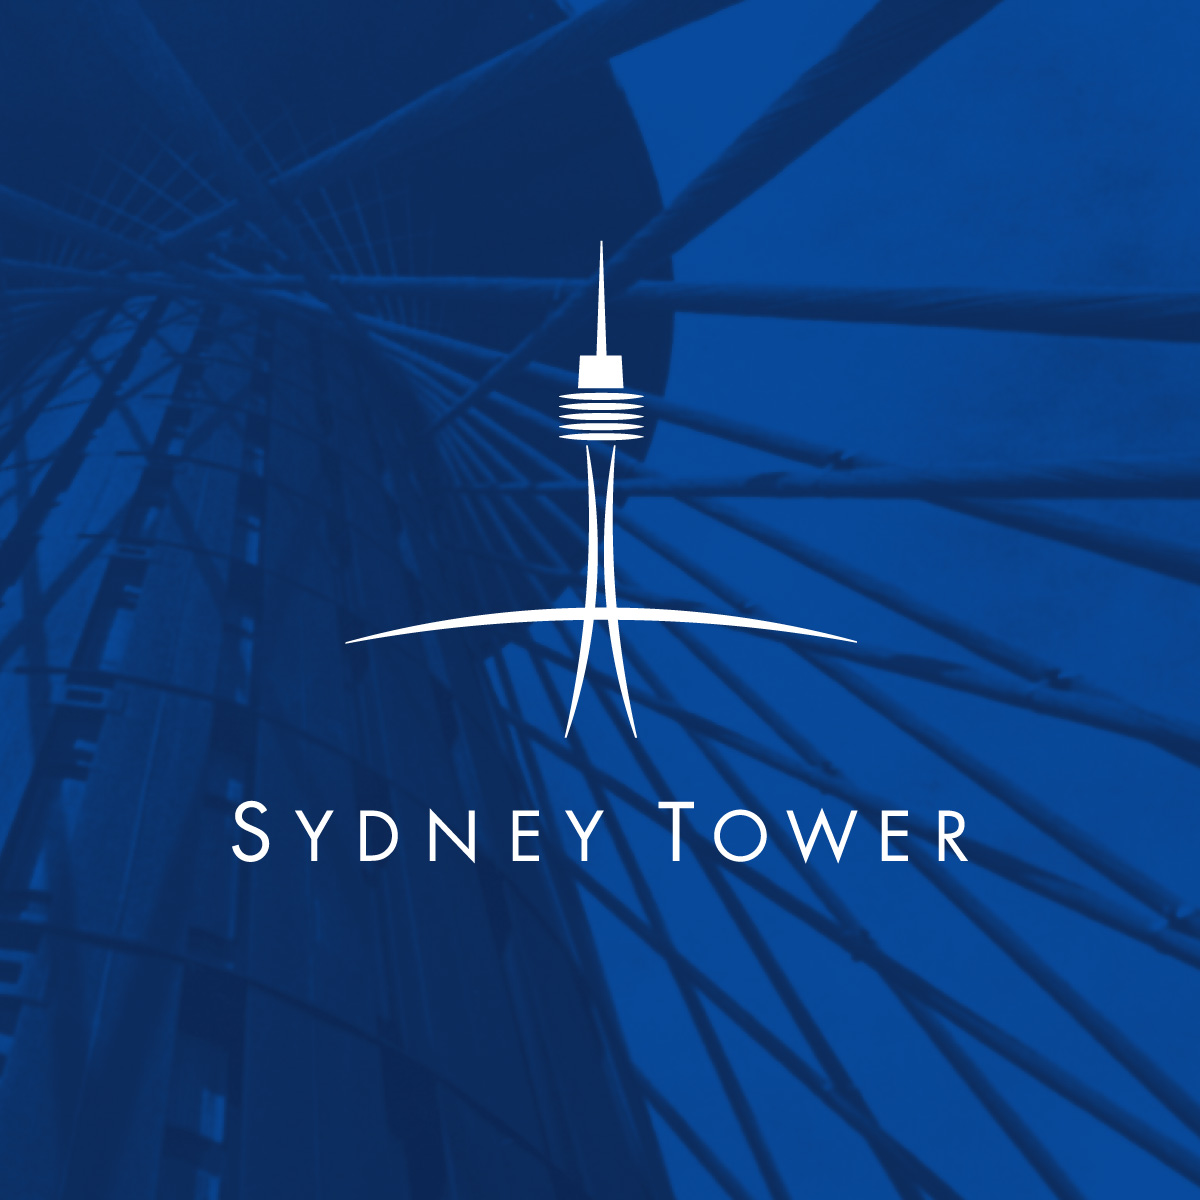 Sydney Tower Brand Identity and Experience Design